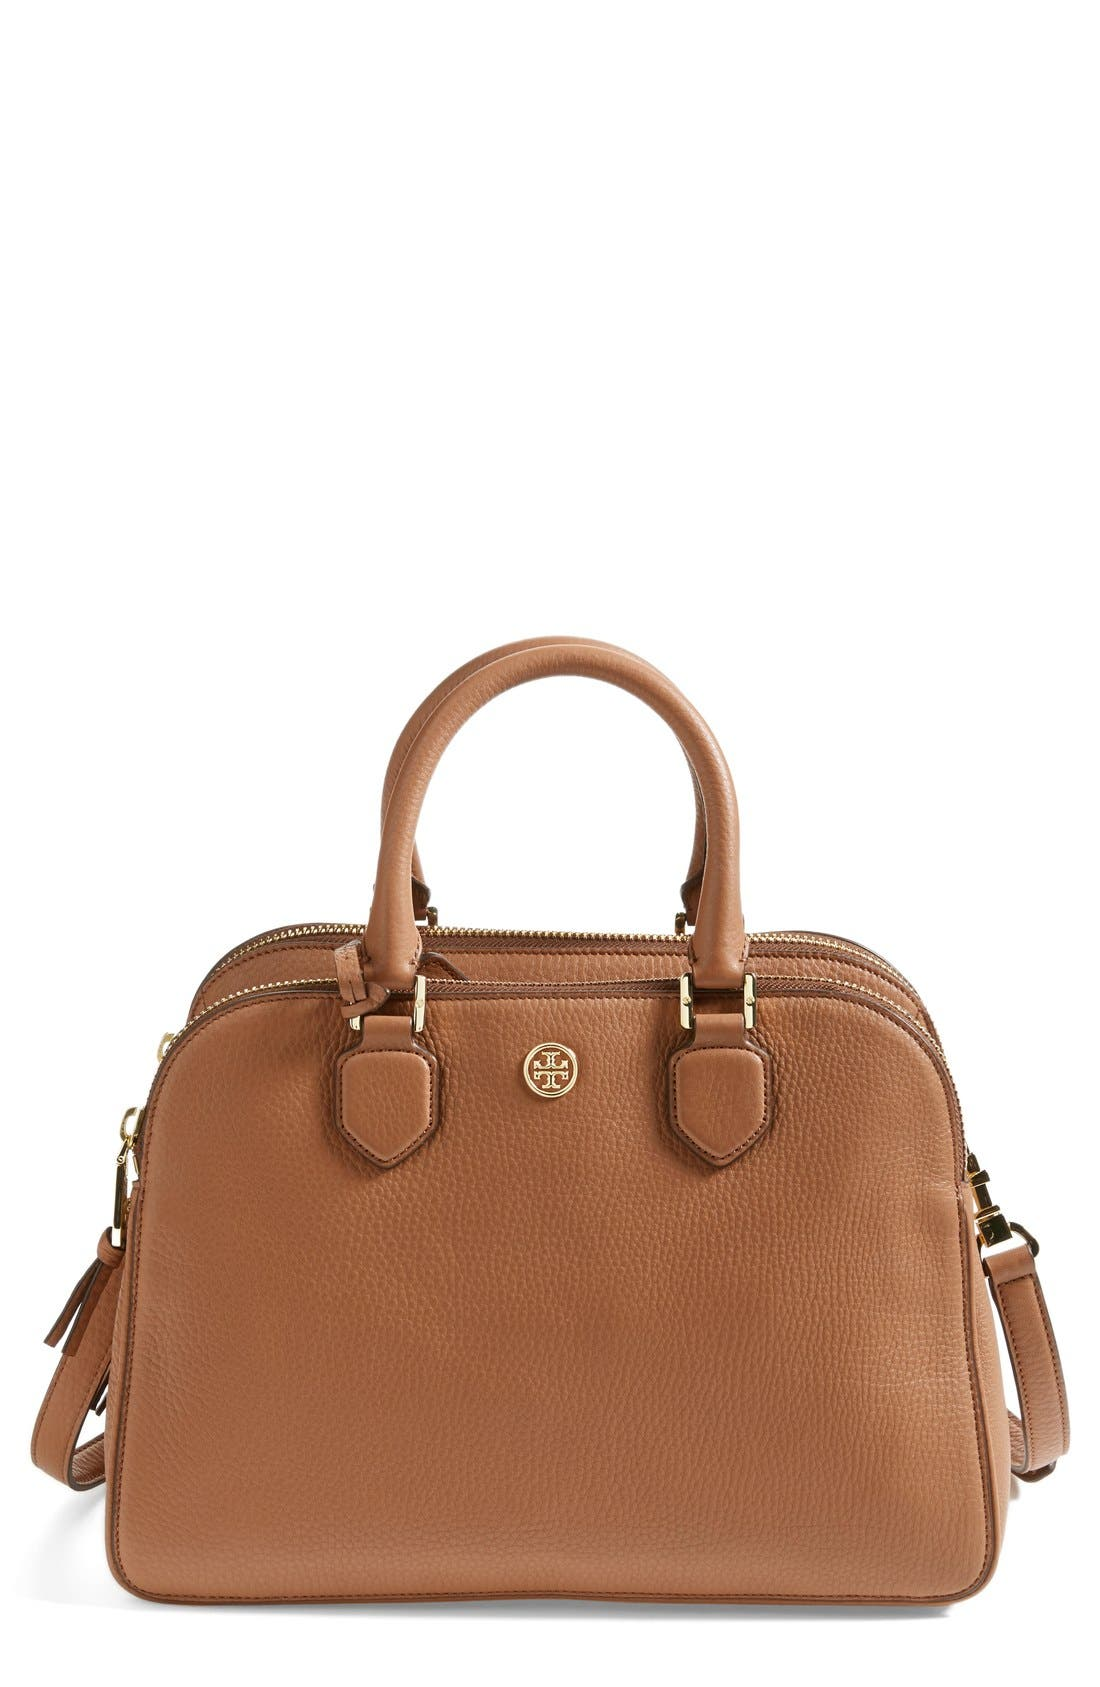 Alternate Image 1 Selected - Tory Burch 'Robinson' Triple Zip Leather Satchel